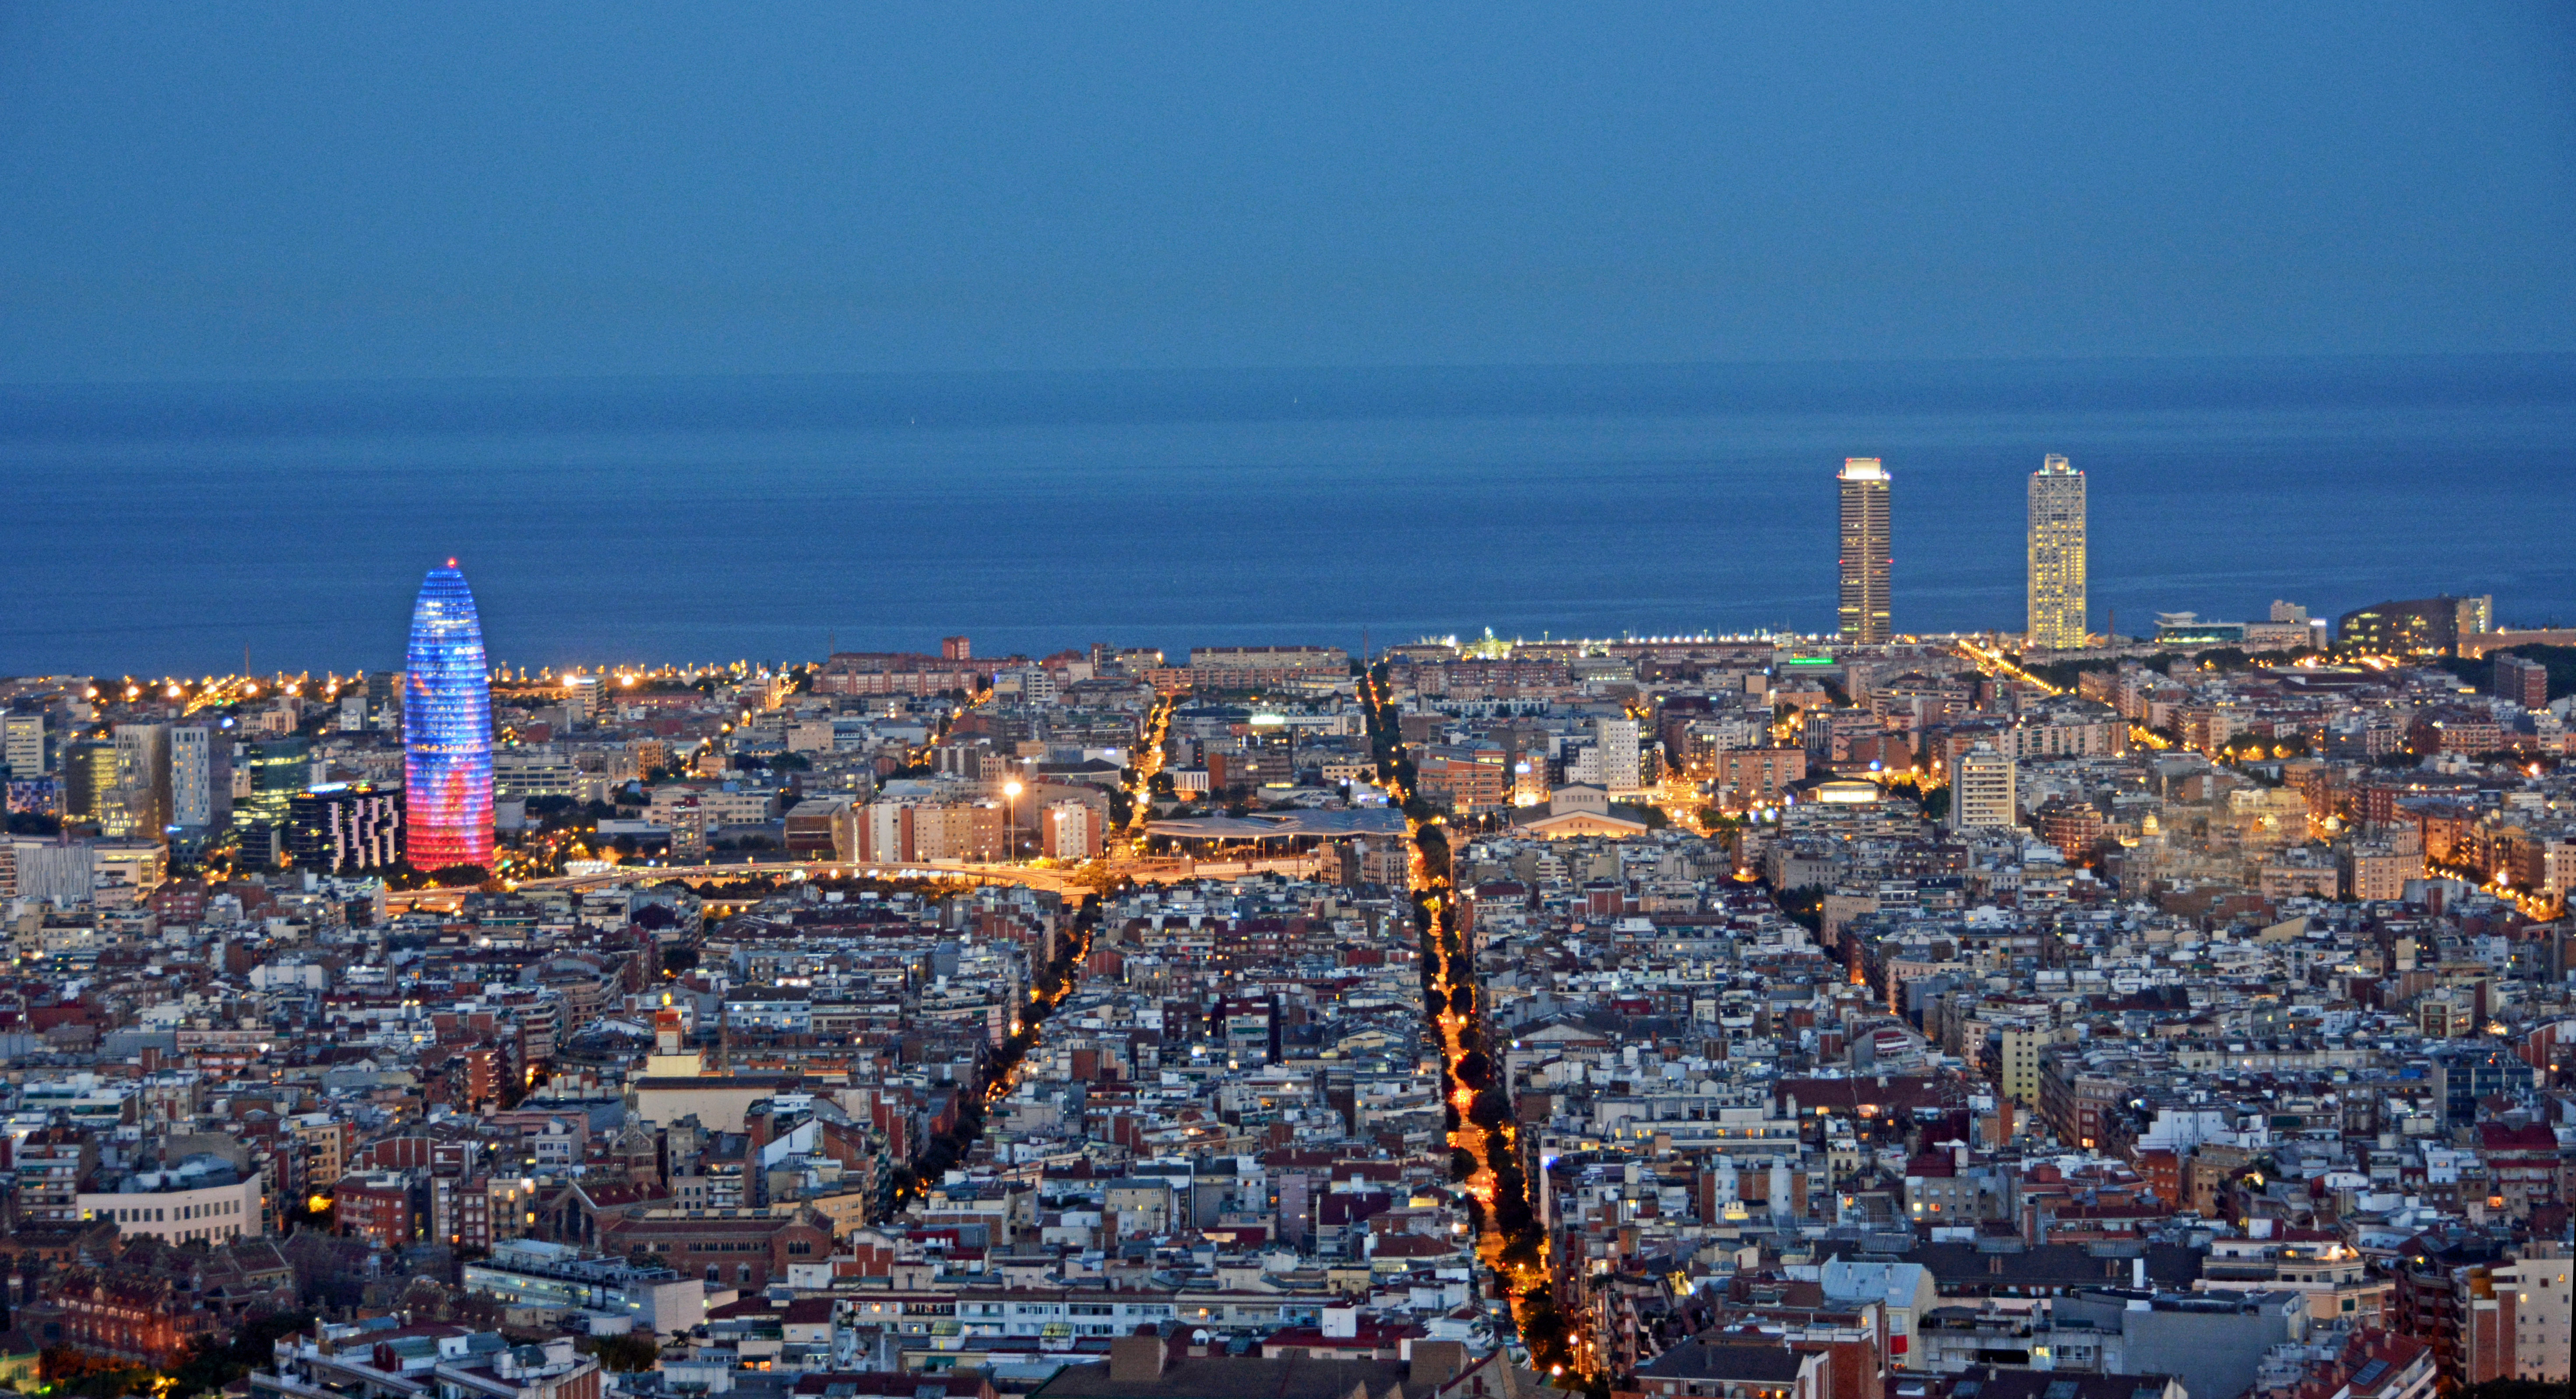 Ikea Garden Barcelona Skyline Flickr Photo Sharing